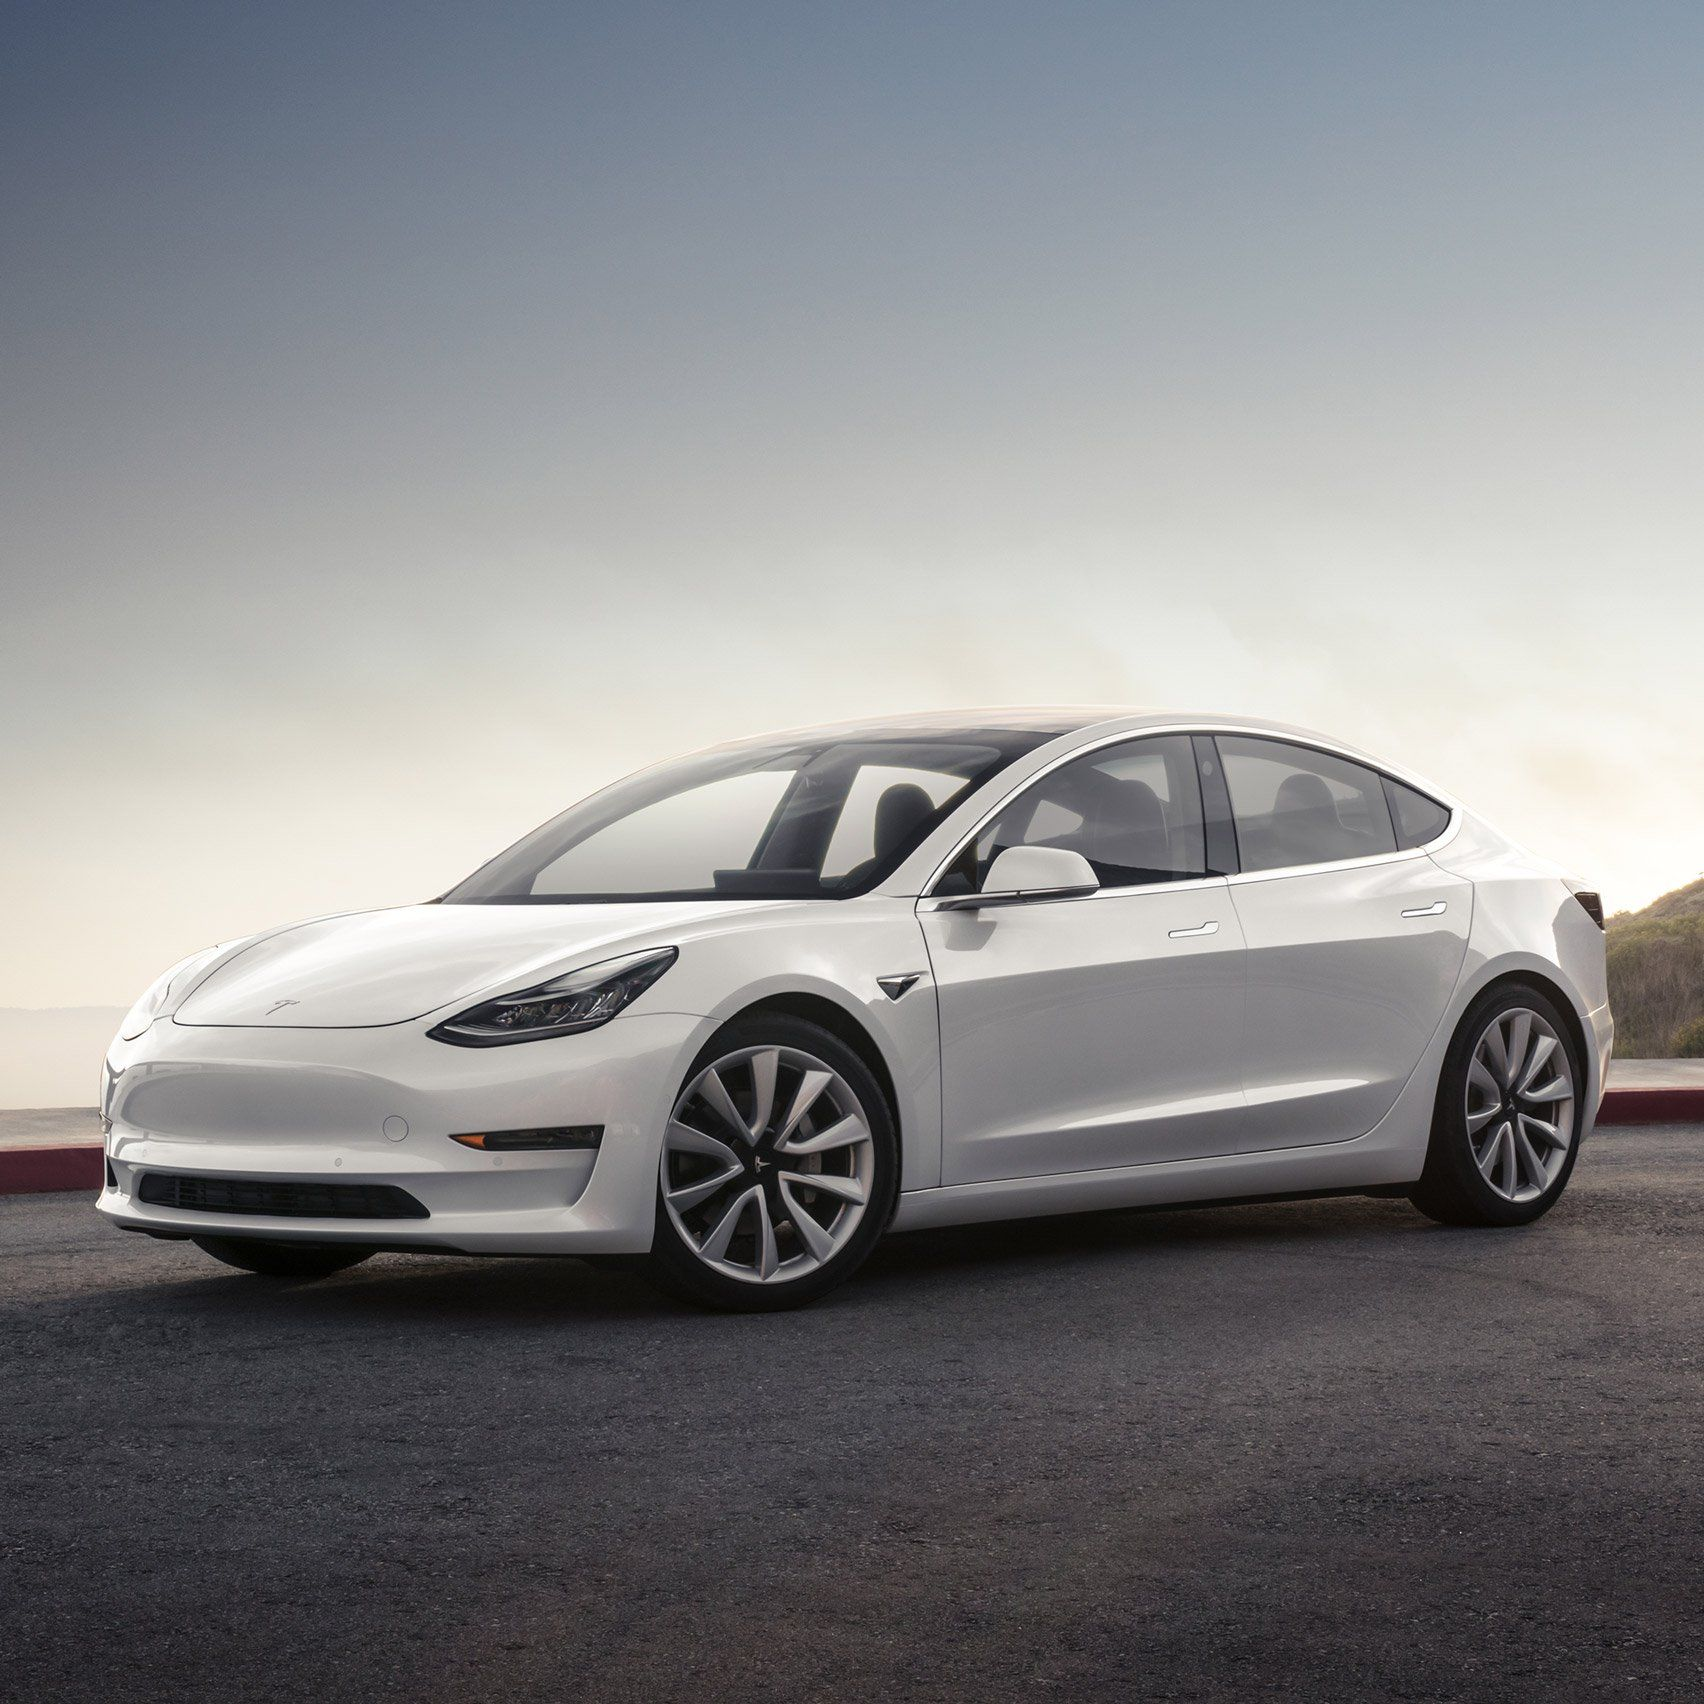 Elon Musk S Electric Car Company Tesla Has Achieved A Long Held Goal With The Launch Of The Model 3 Its Most Affordab Tesla Tesla Motors Model S Electric Cars